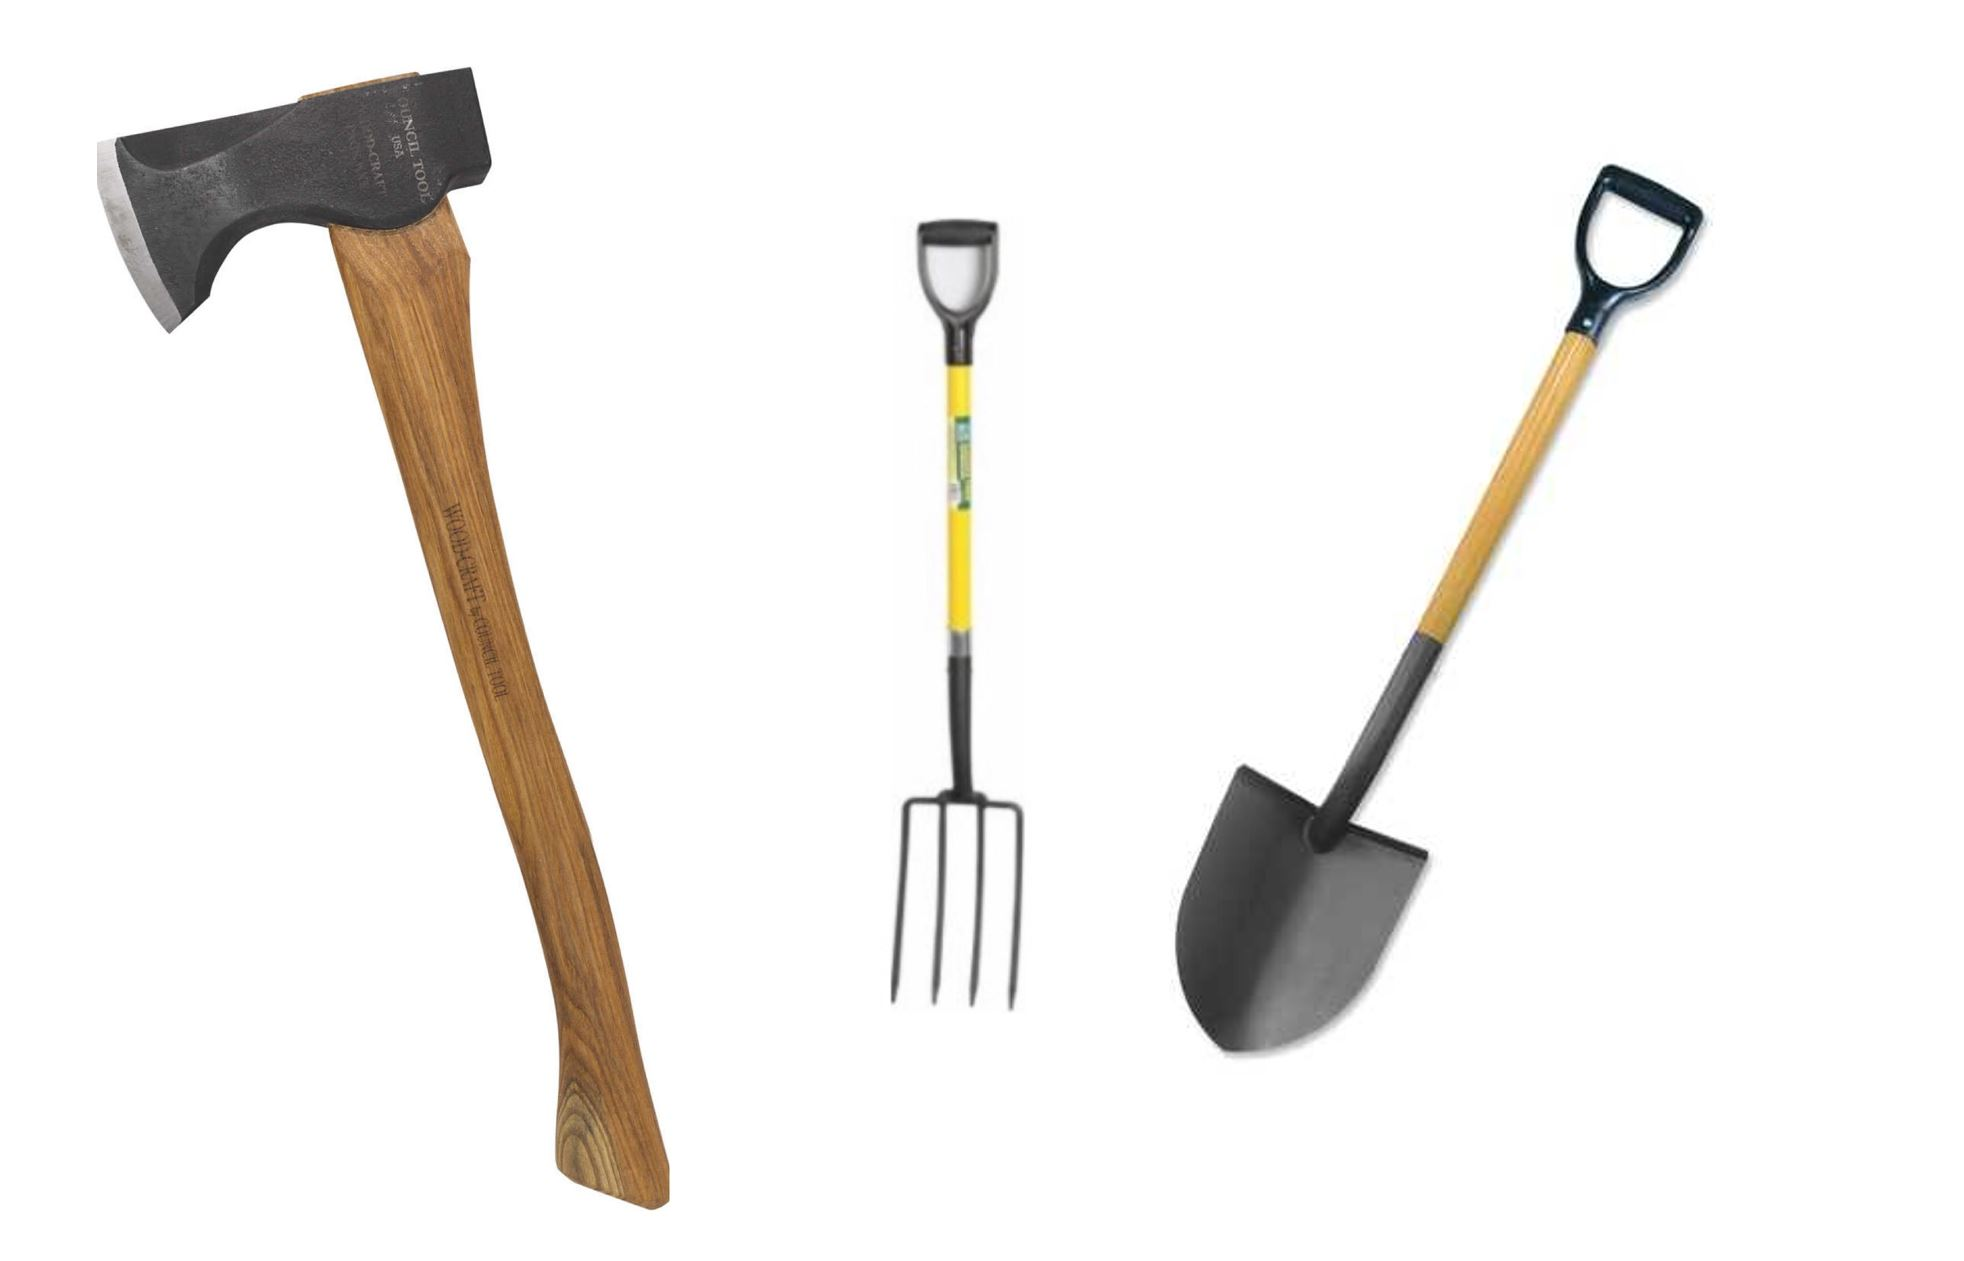 Securely Carry any combination of 3 large handle shovels, rakes, brooms, axes using our universal tool holders with rubber straps